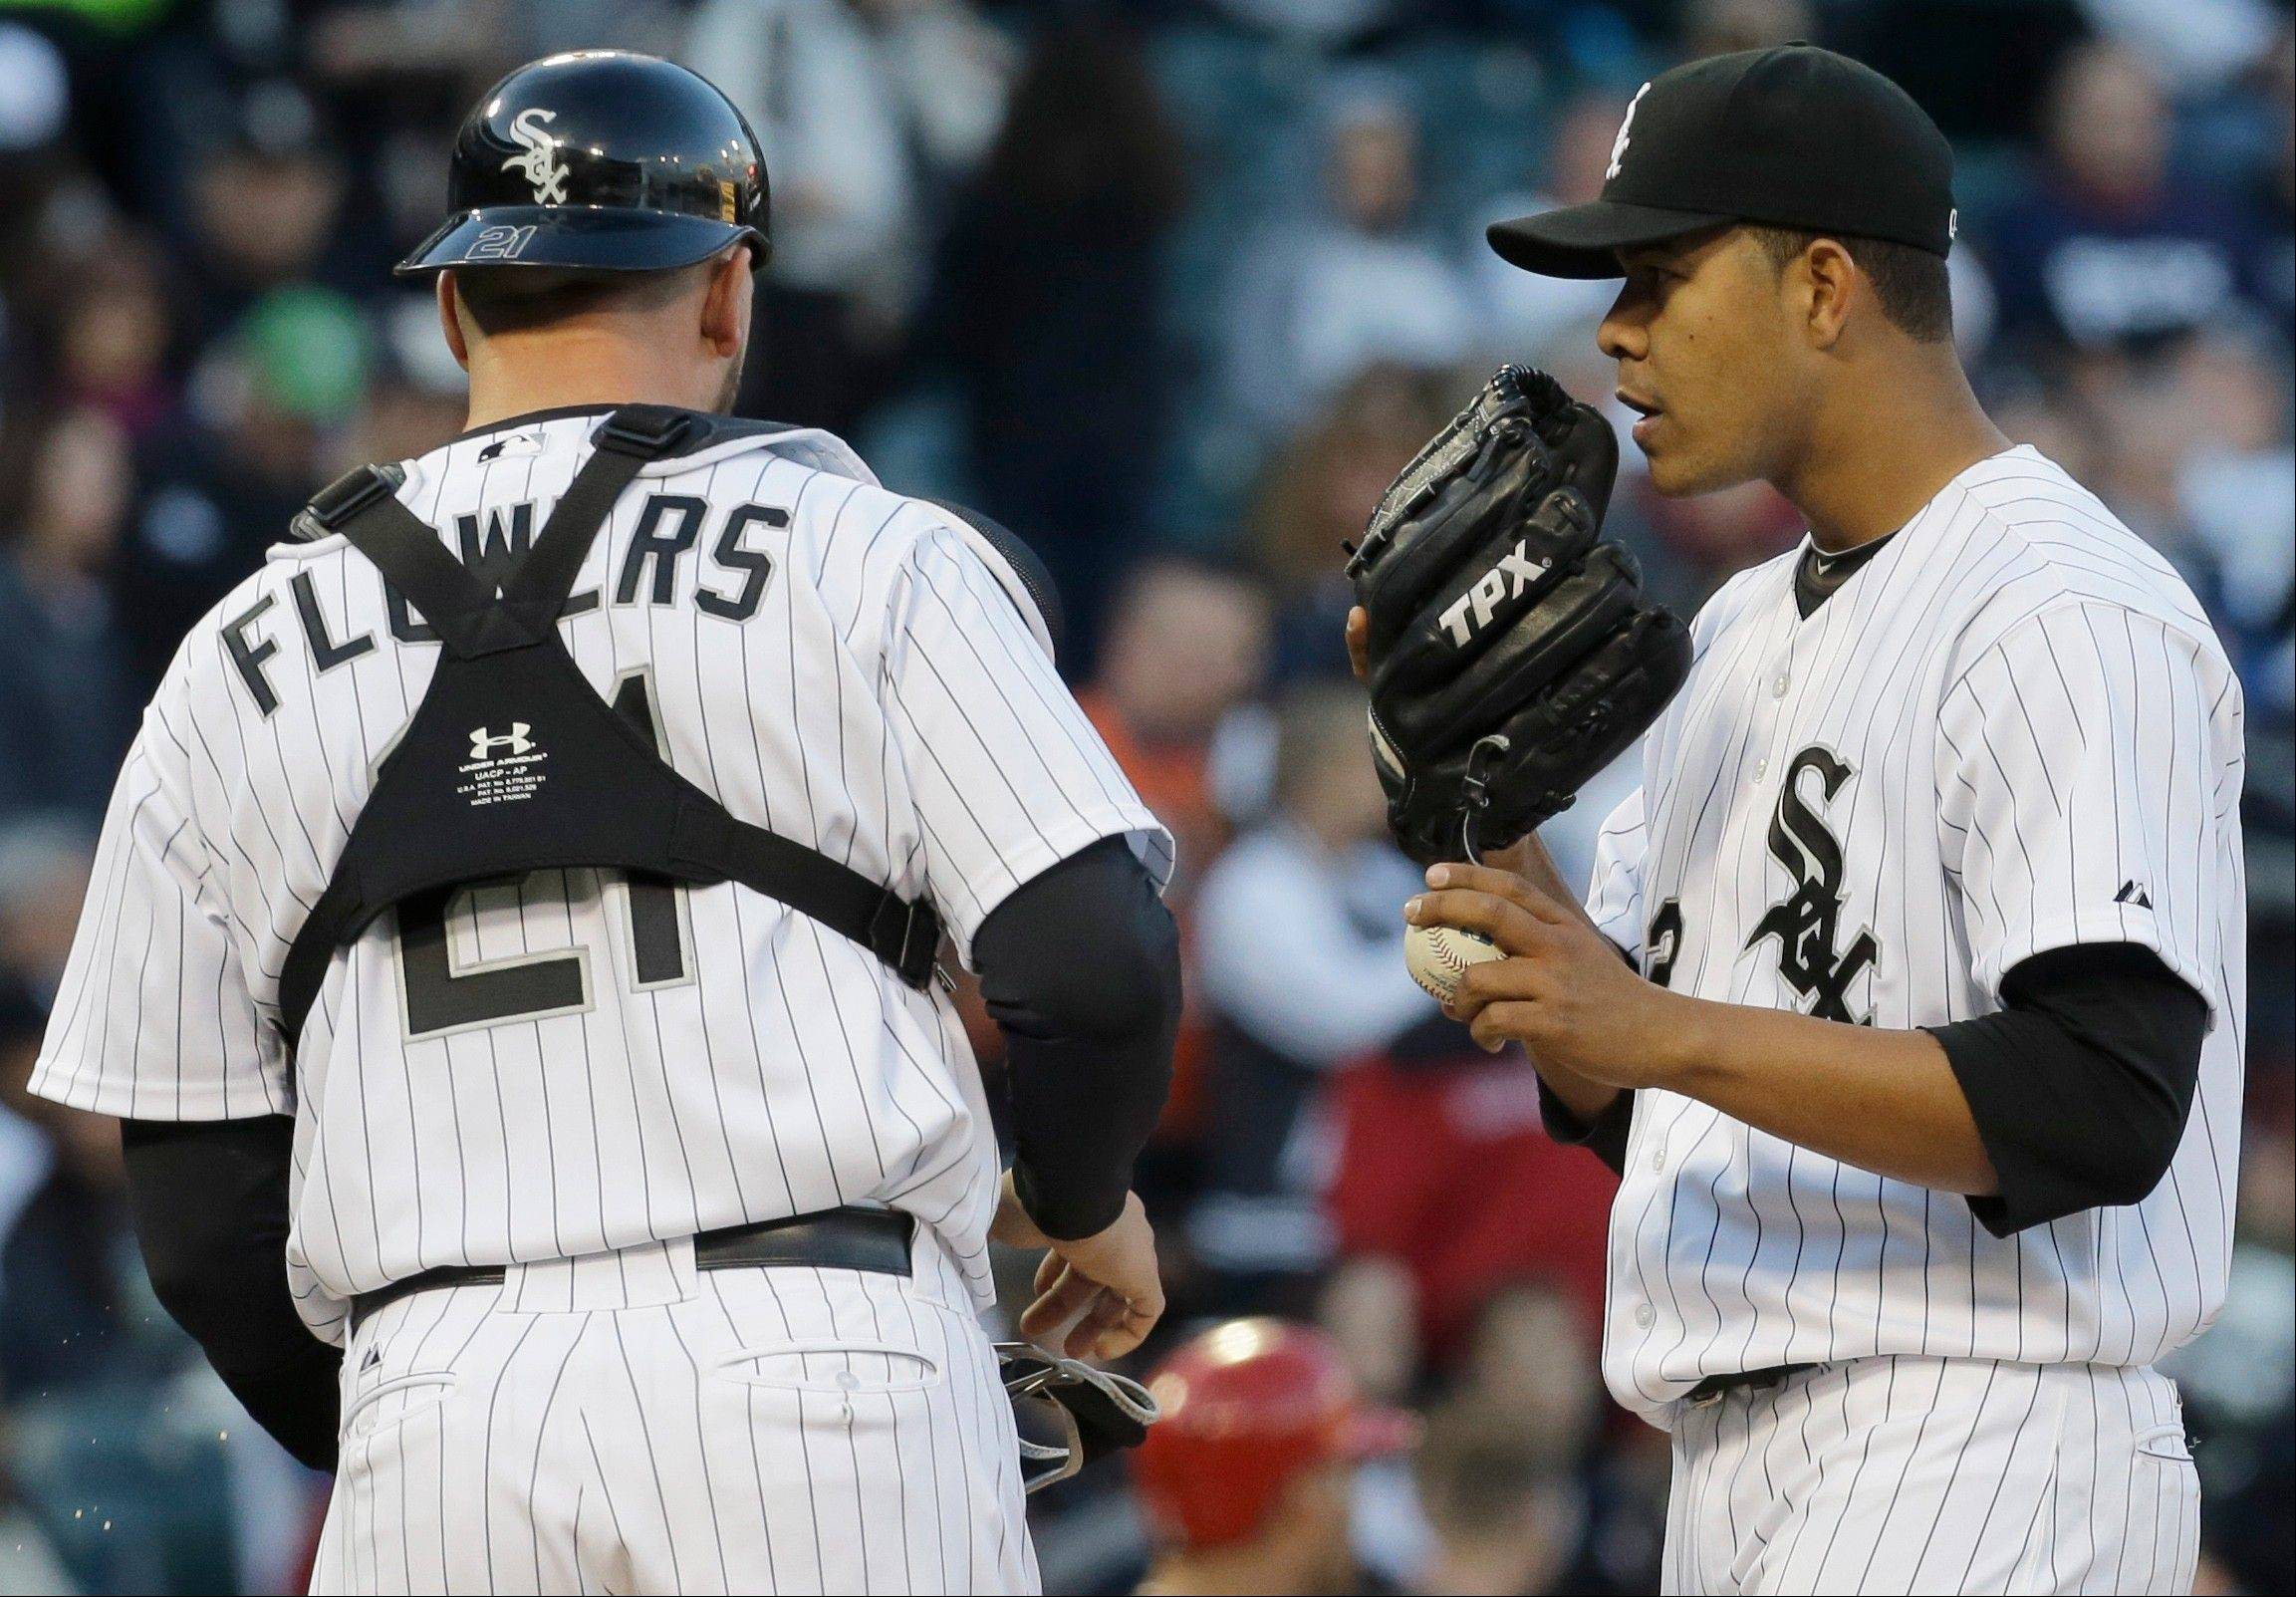 White Sox starter Jose Quintana talks to catcher Tyler Flowers during the third inning, when the Angels scored the go-ahead run on a Flowers passed ball.